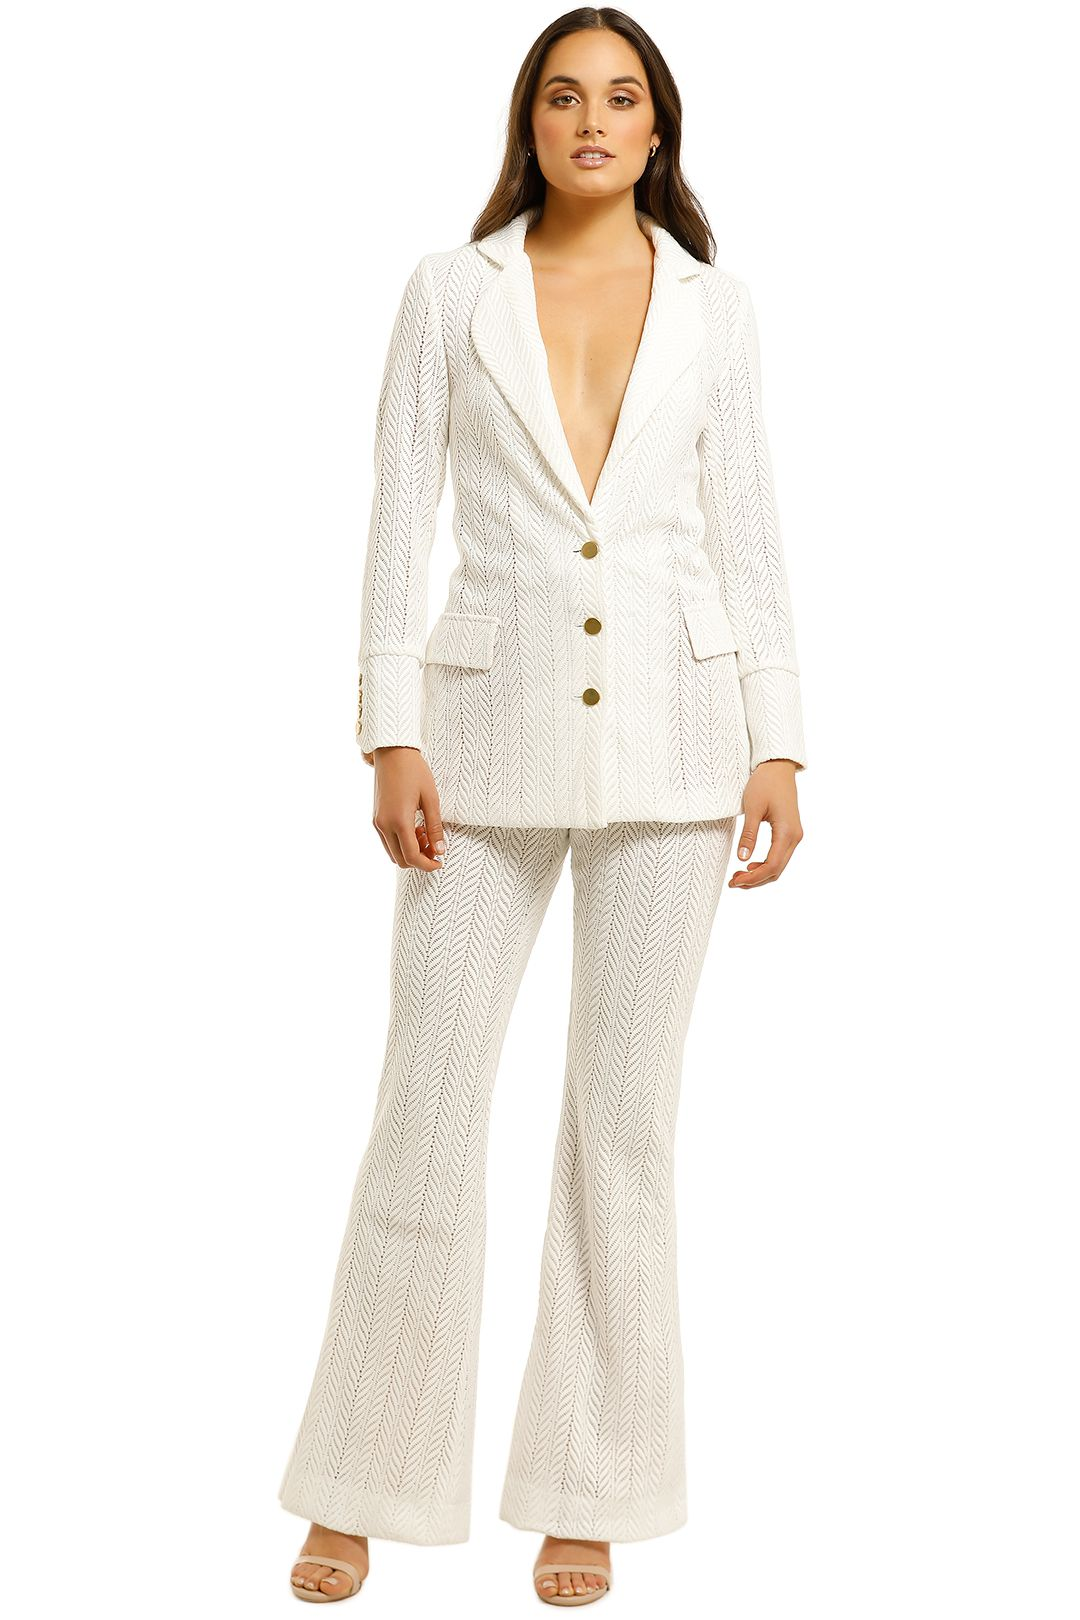 We-Are-Kindred-Marbella-Blazer-and-Pant Set-Frost-Front